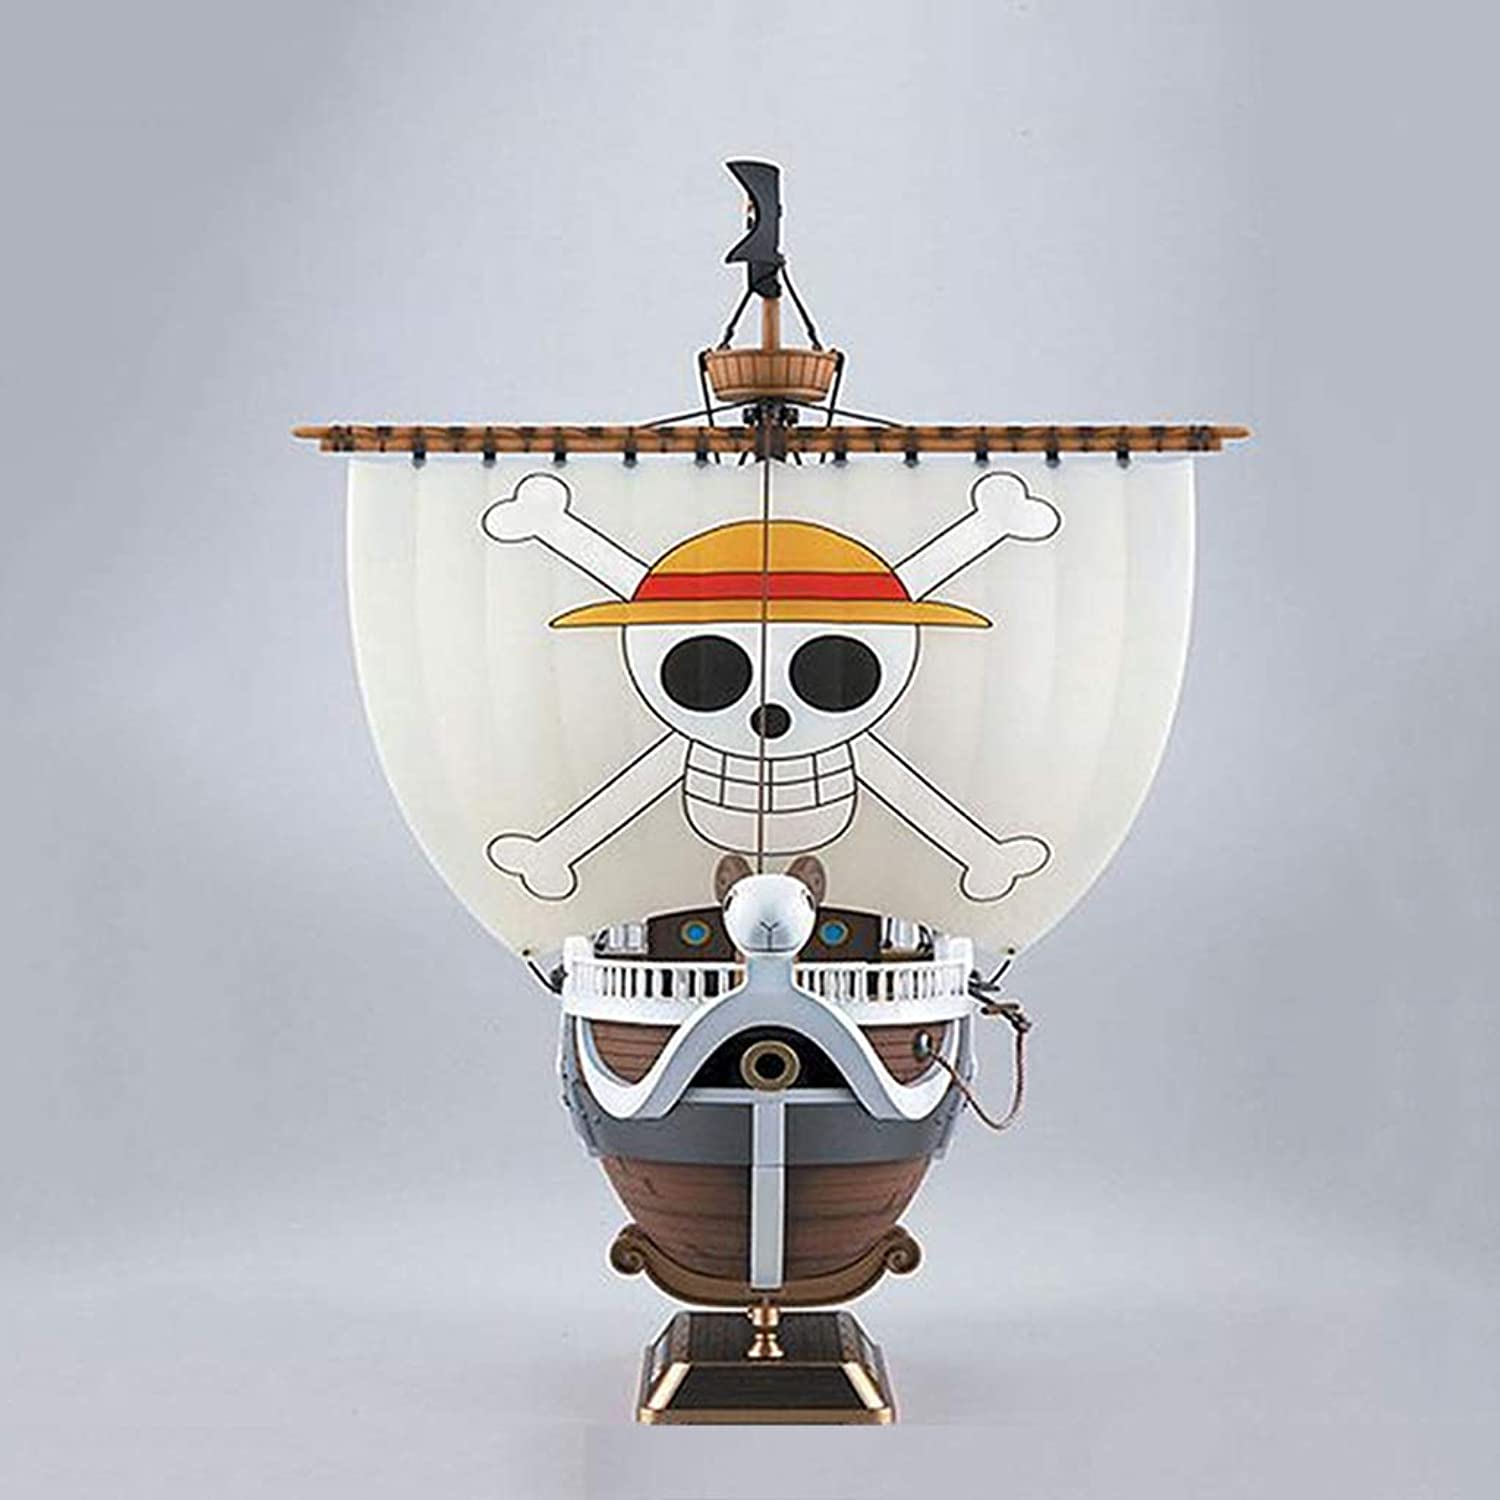 FKYGDQ Anime Cartoon Pirate Ship Game Model High 25 Cm Toy Decorations Gifts Collectibles Birthday Gifts Toy Statue